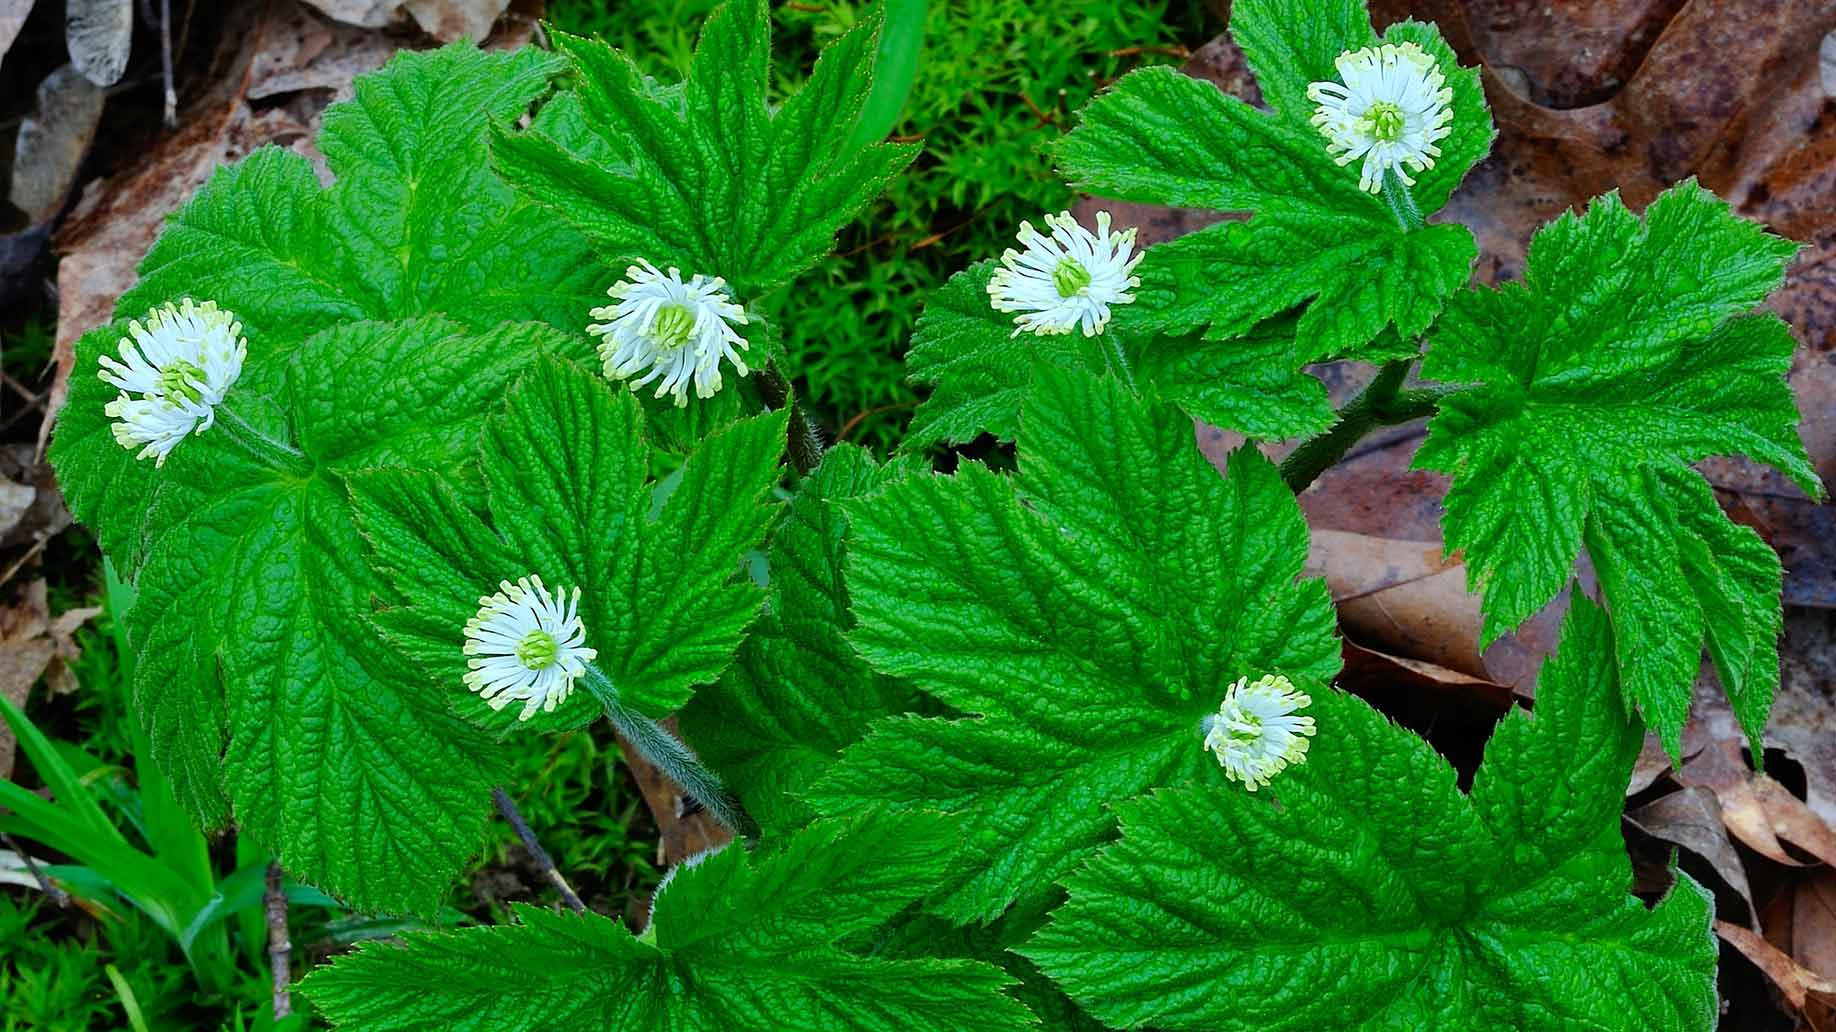 goldenseal herb with fresh green leaves and white flowers